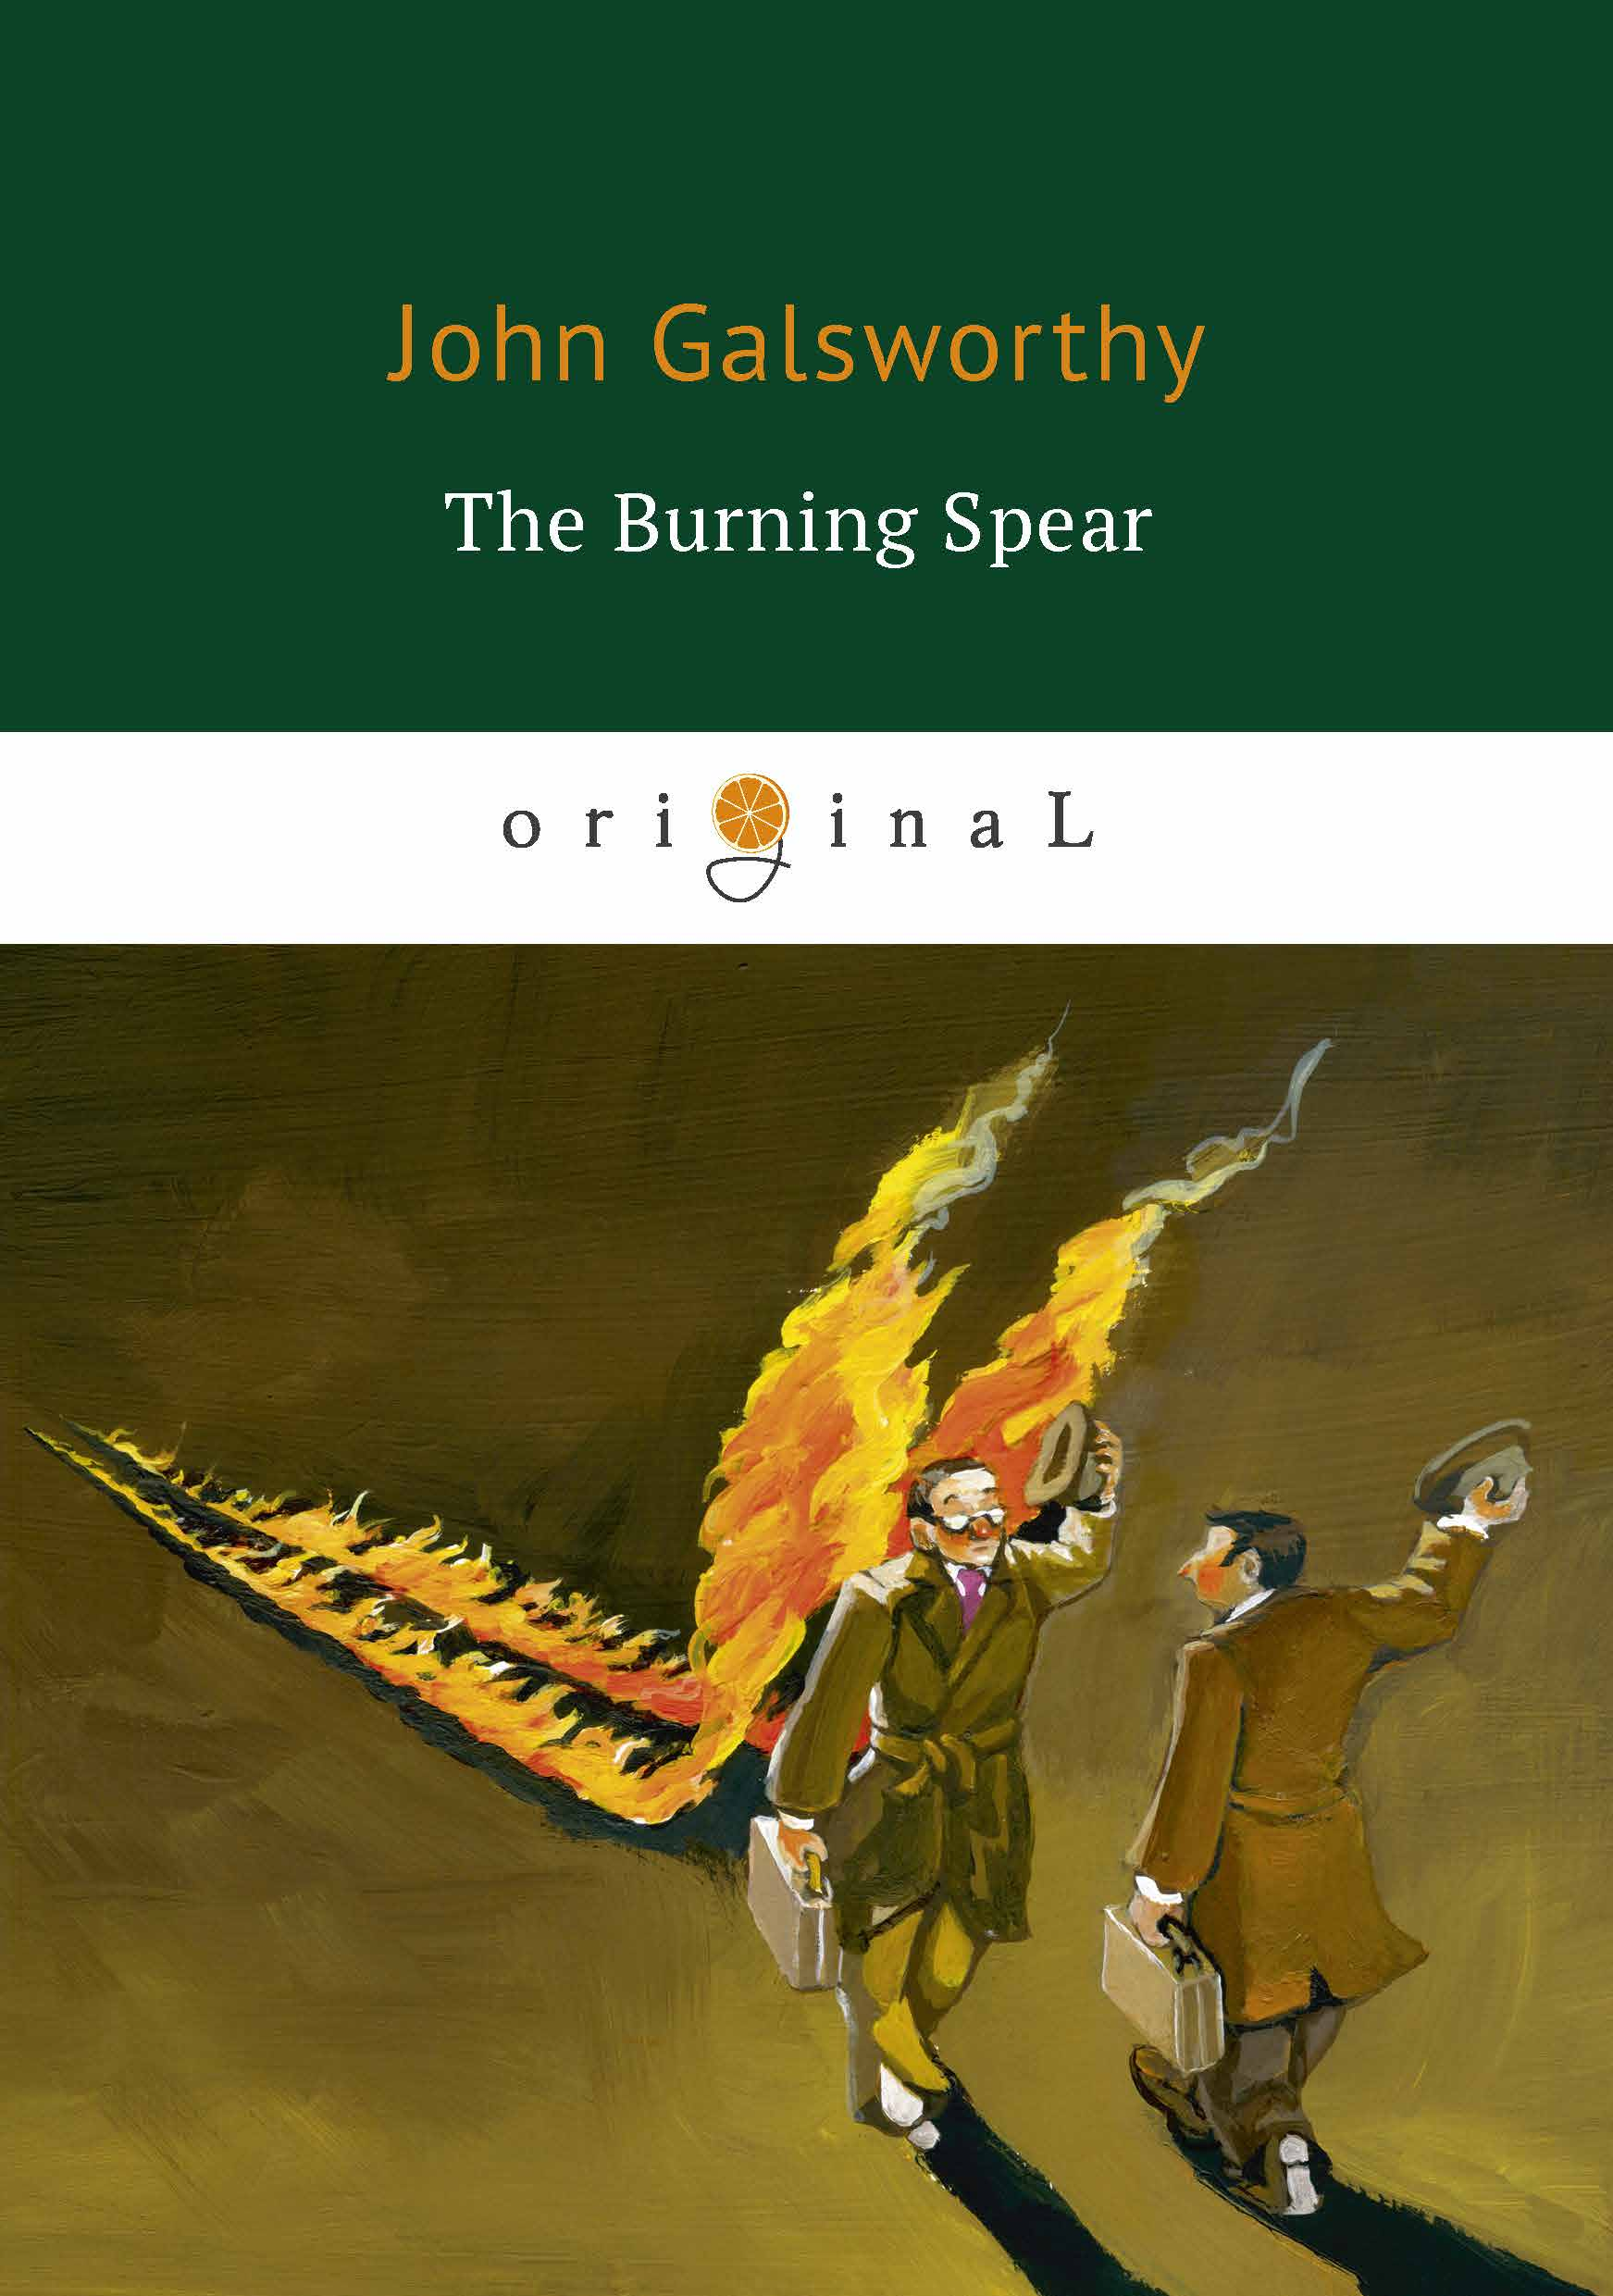 John Galsworthy The Burning Spear